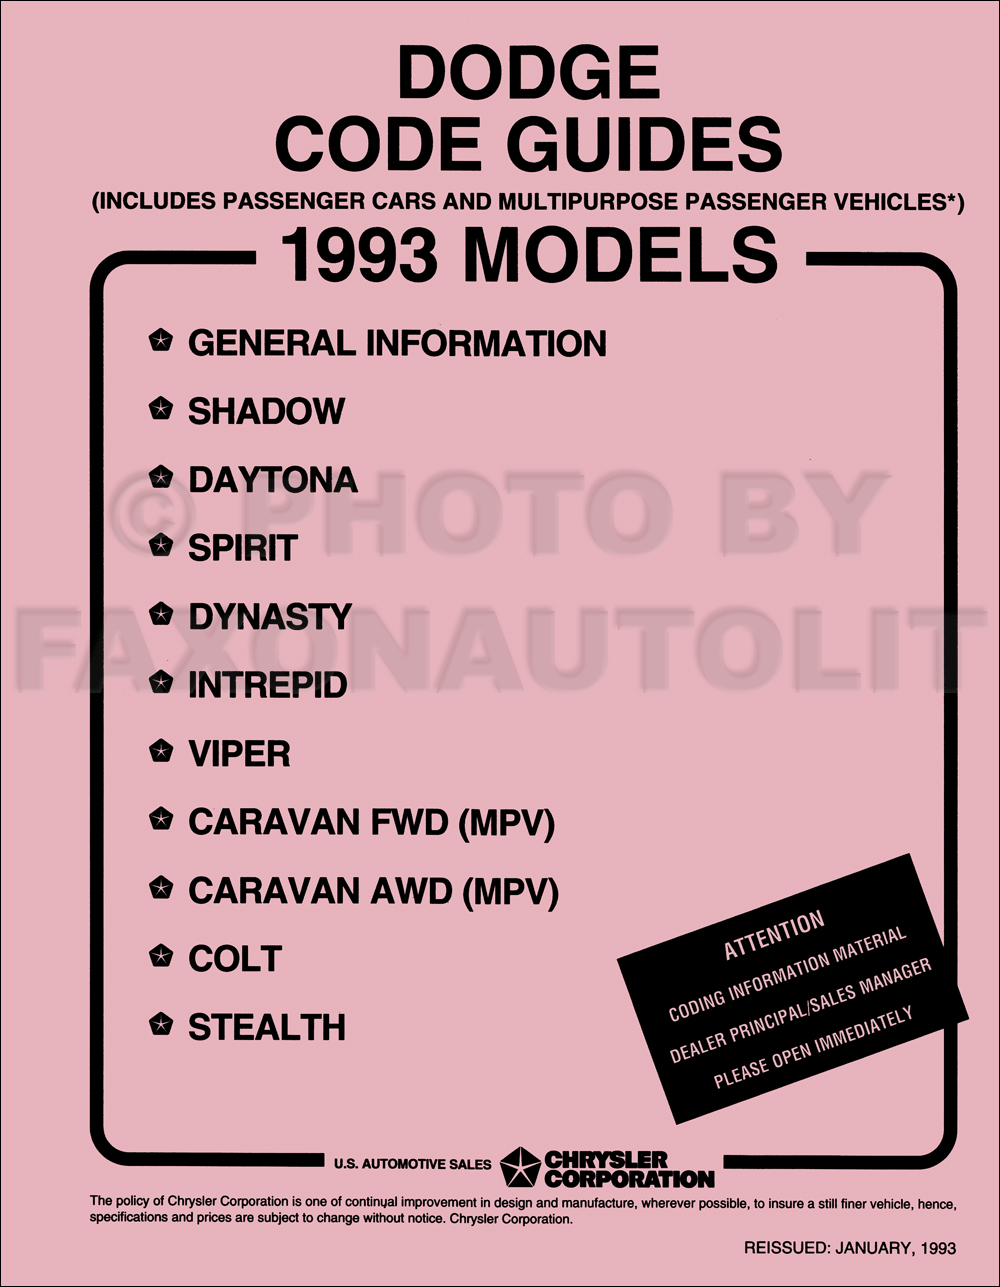 1993 Dodge Ordering Code Guide Original